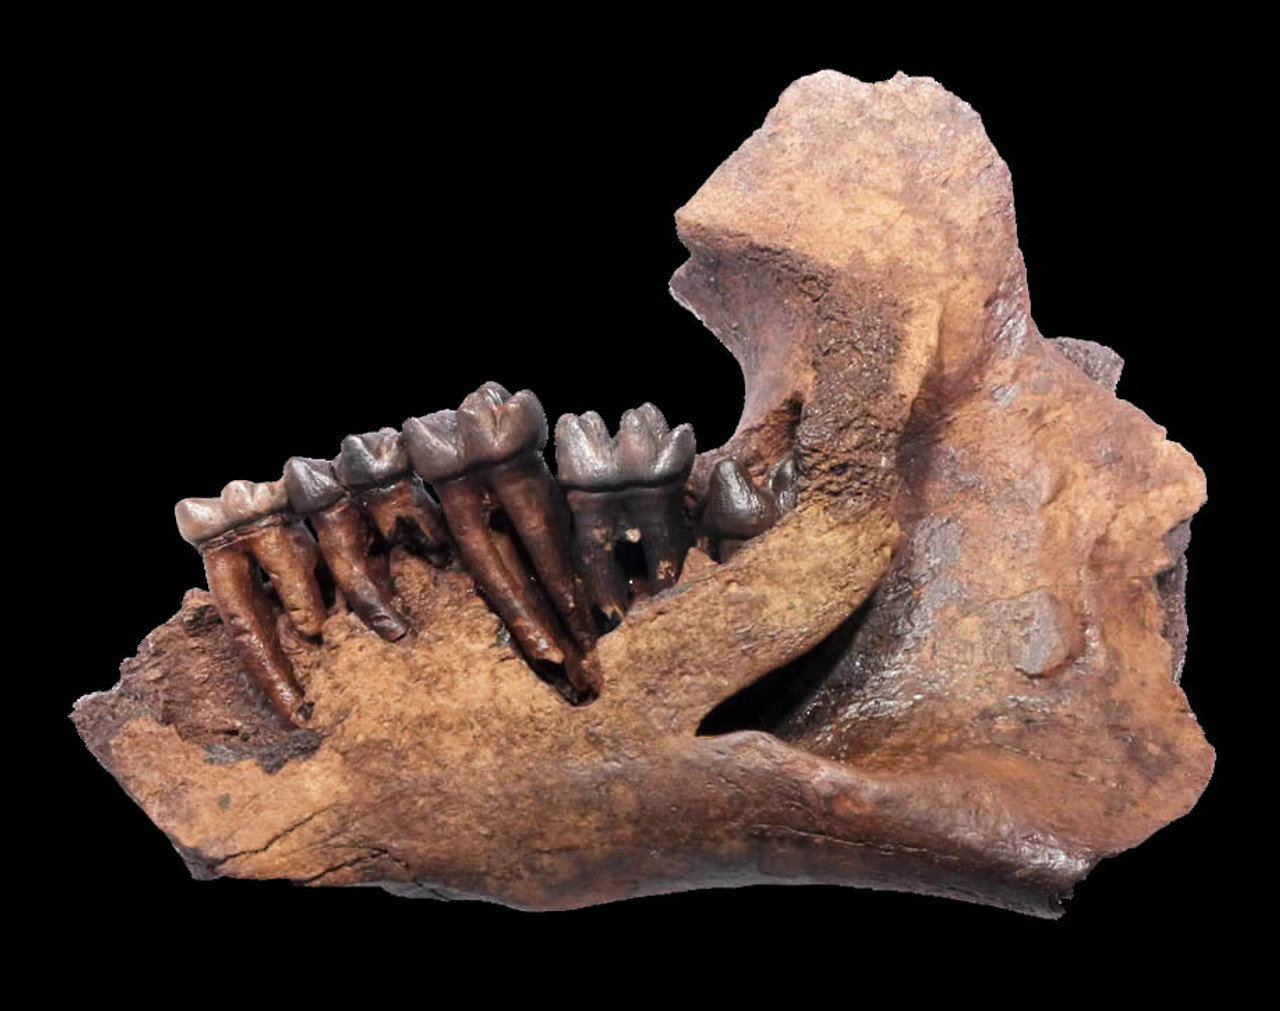 LMX090 - RARE MIDDLE PLEISTOCENE FOSSIL MANATEE MANDIBLE WITH ORIGINAL ROOTED TEETH